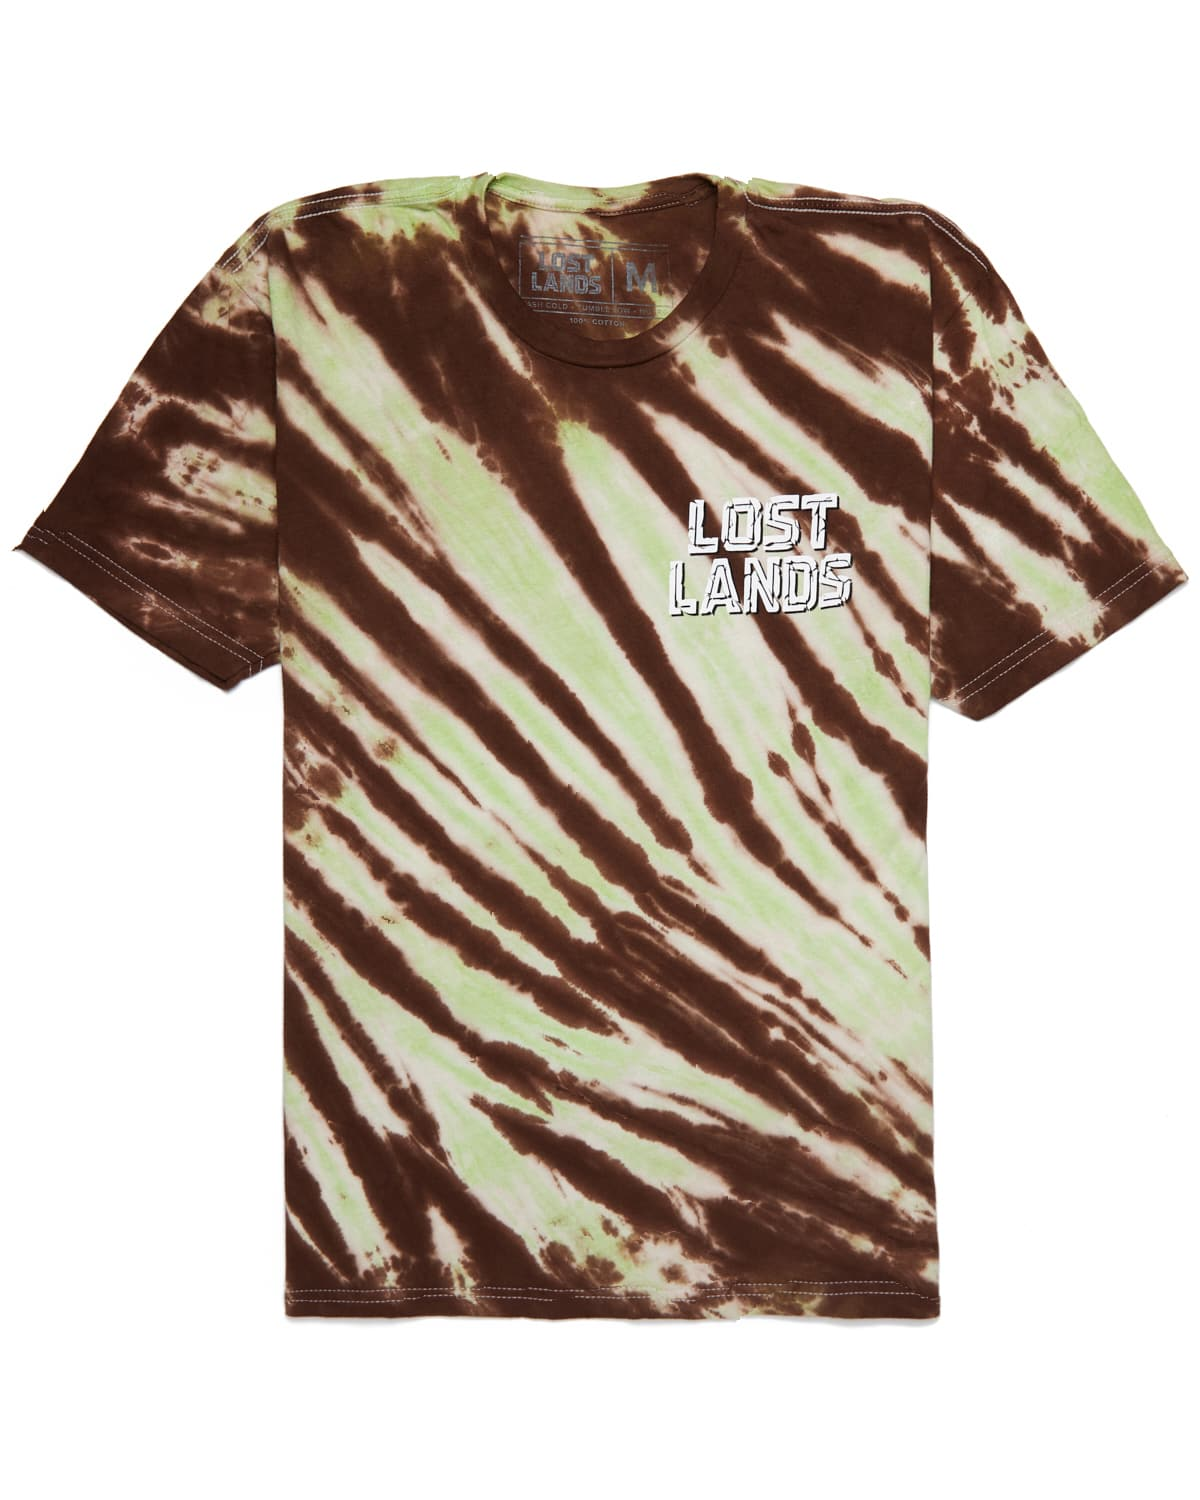 Lost Lands 'Slashed' Tie Dye T-Shirt (Green)